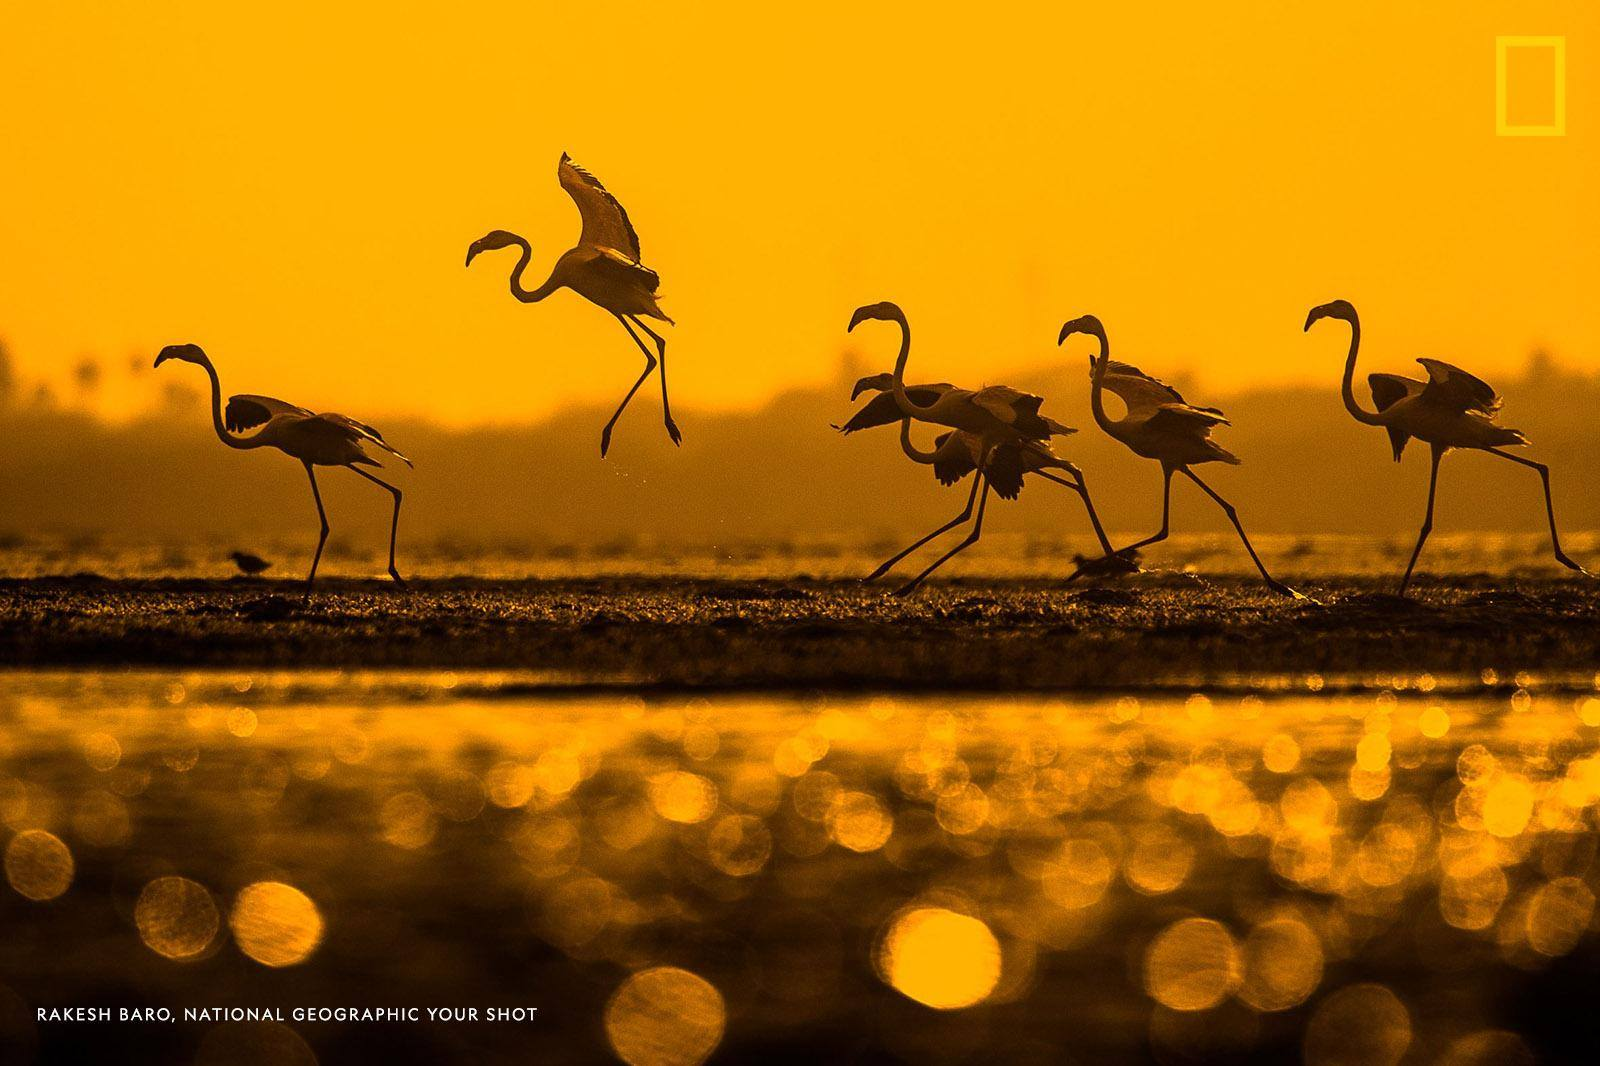 Your Shot photographer Rakesh Baro spent hours sitting in the water while photographing these flamingos in India to capture just the right perspective and the sun reflecting off the water. https://on.natgeo.com/2WbchDb